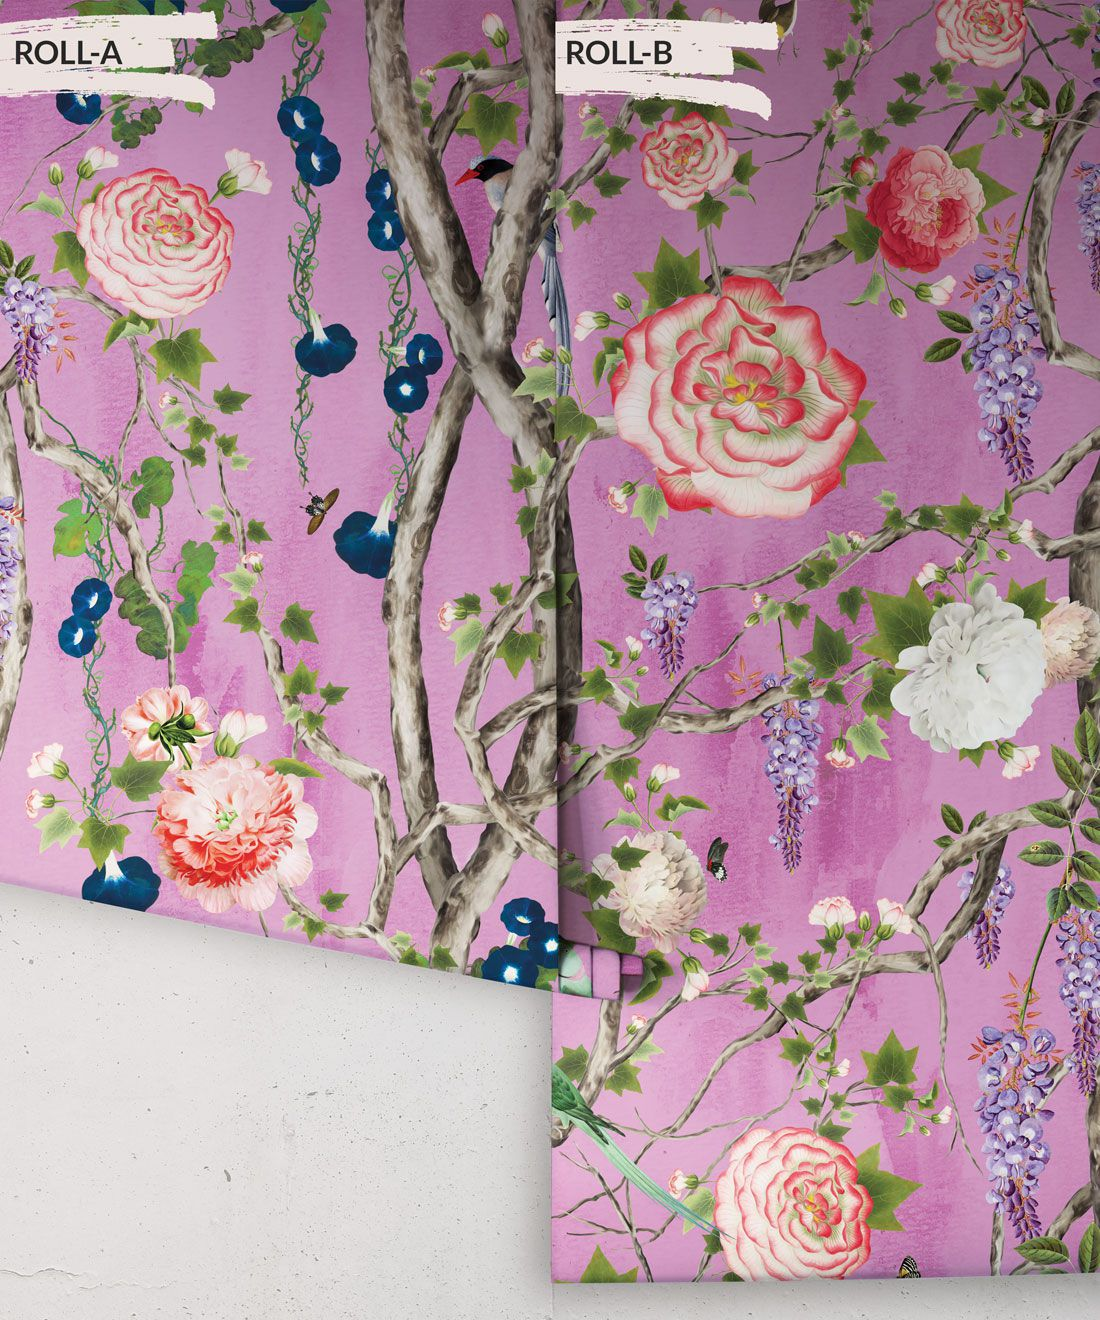 Empress Wallpaper • Romantic Wallpaper • Floral Wallpaper • Chinoiserie Wallpaper • Plum Purple colour wallpaper rolls